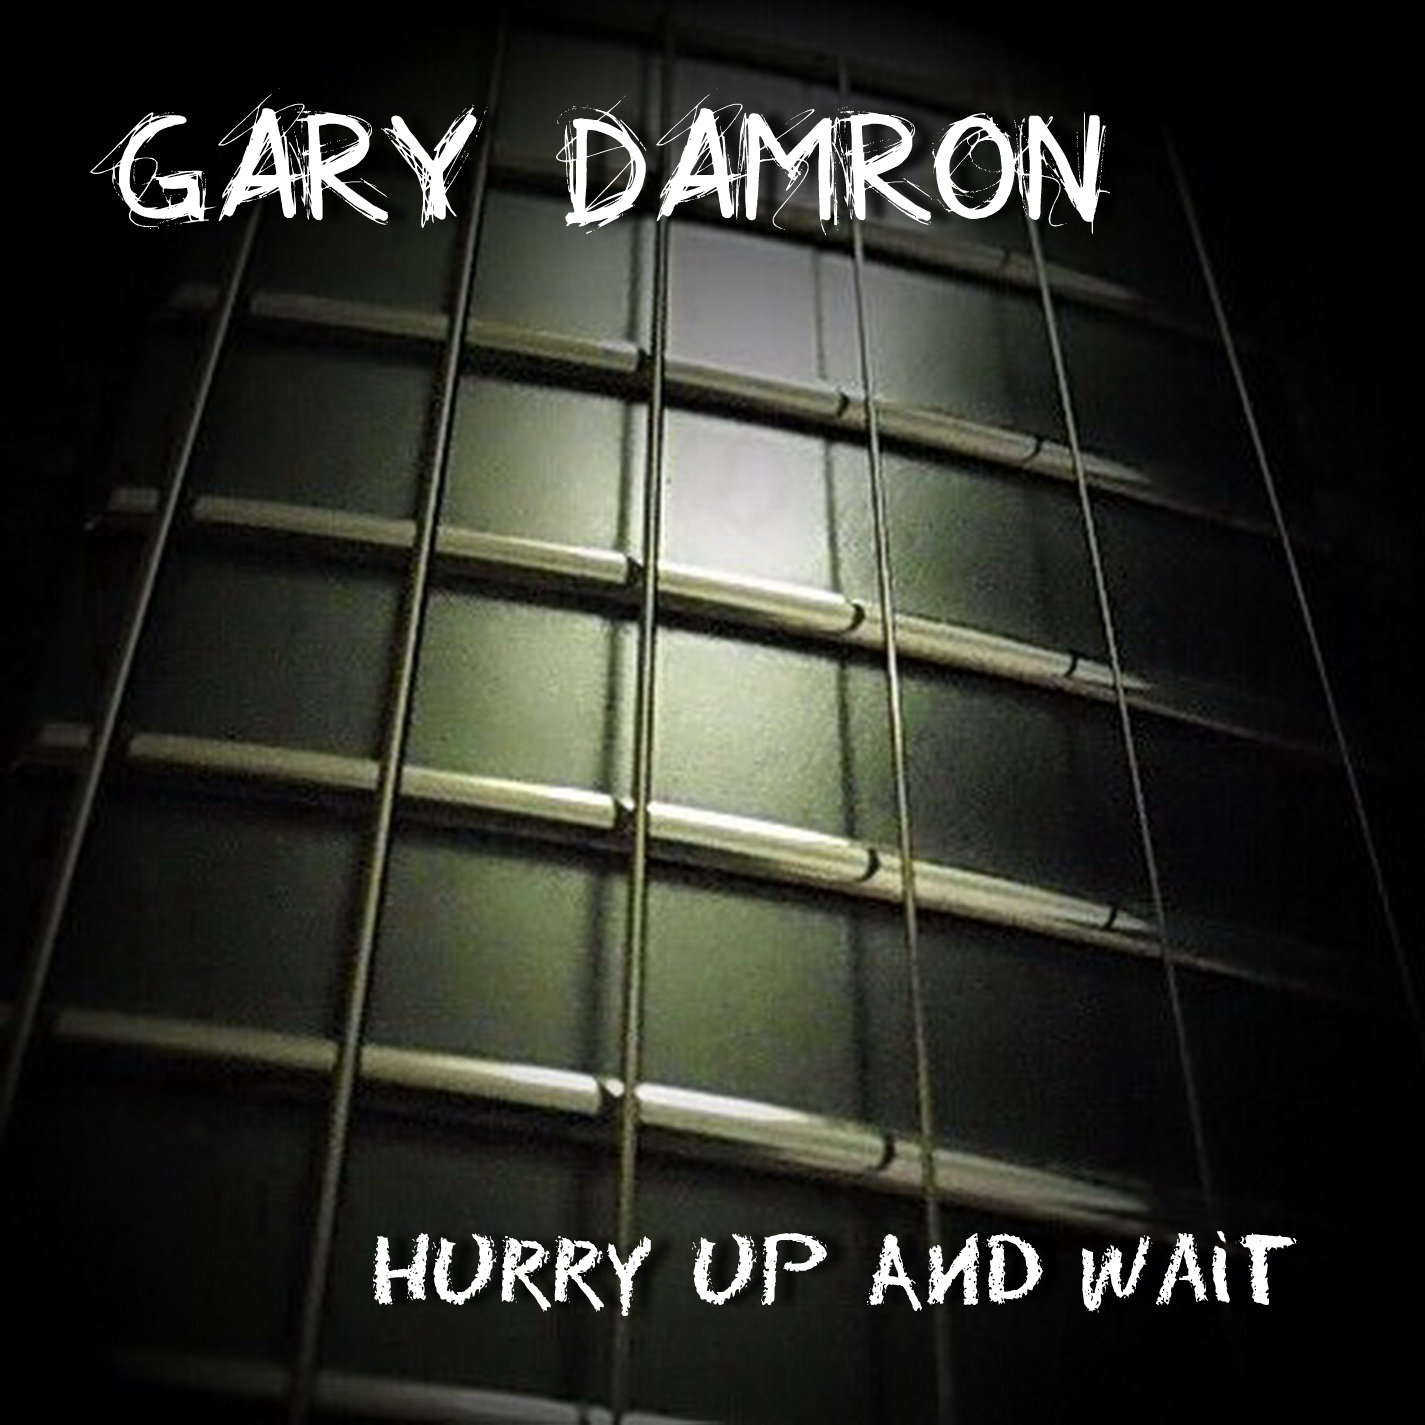 Gary Damron: Hurry Up and Wait